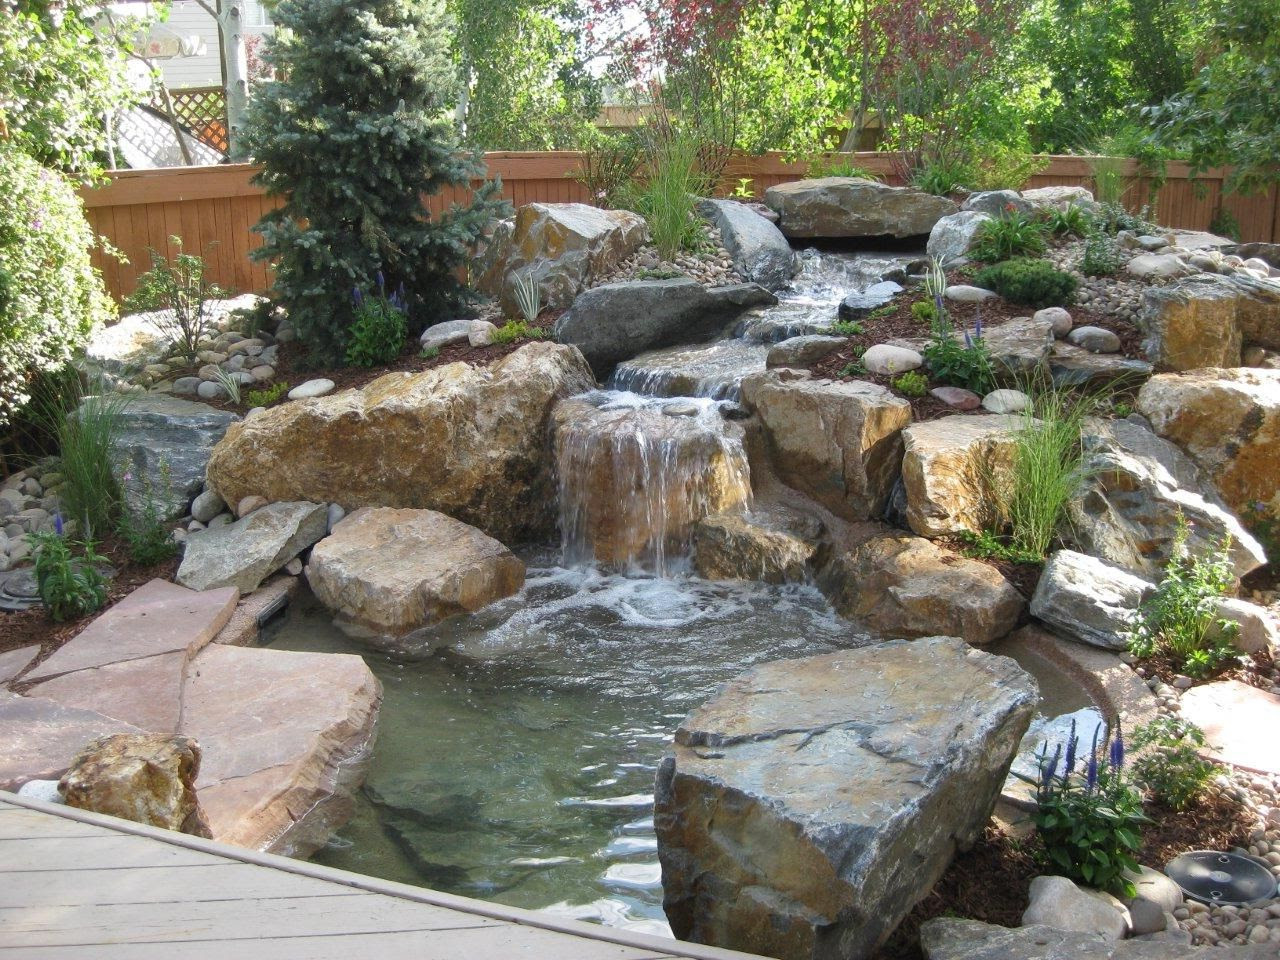 inspiring backyard water feature small pond grey rocks green plant decoration backyard water falls pool garden outdoor good design ideas of backyard water falls